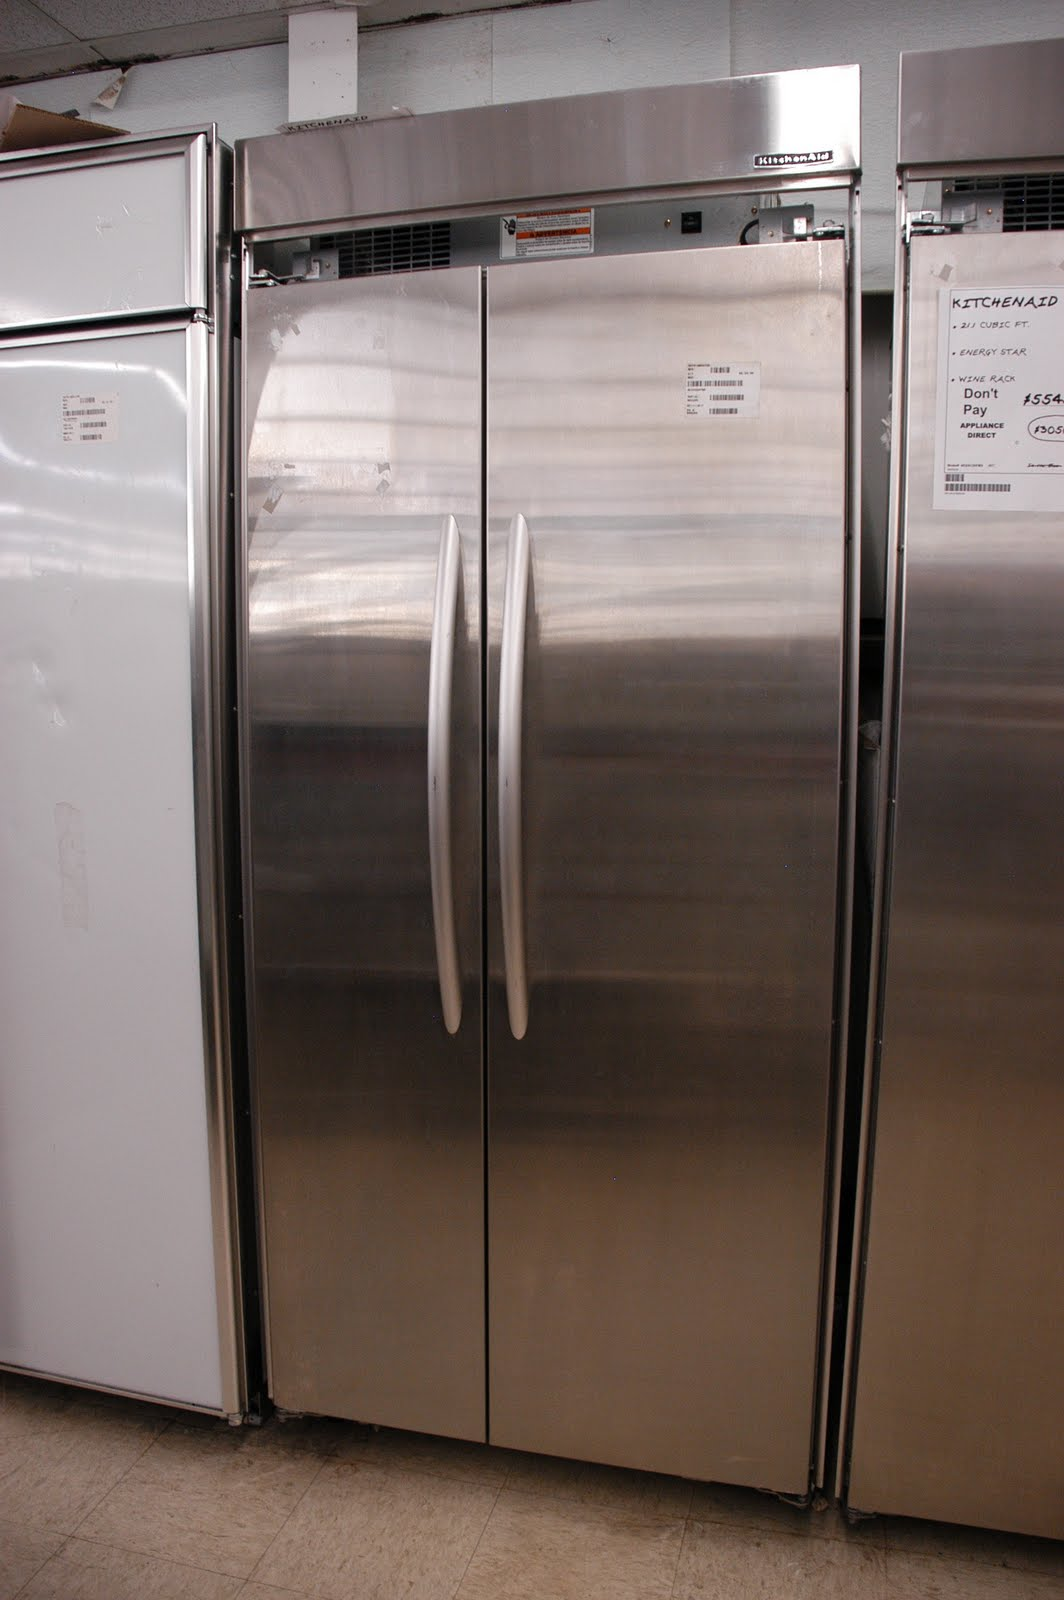 KitchenAid Stainless Steel 20.9 Cu. Ft. Side By Side Refrigerator   Orlando  Appliance Stores